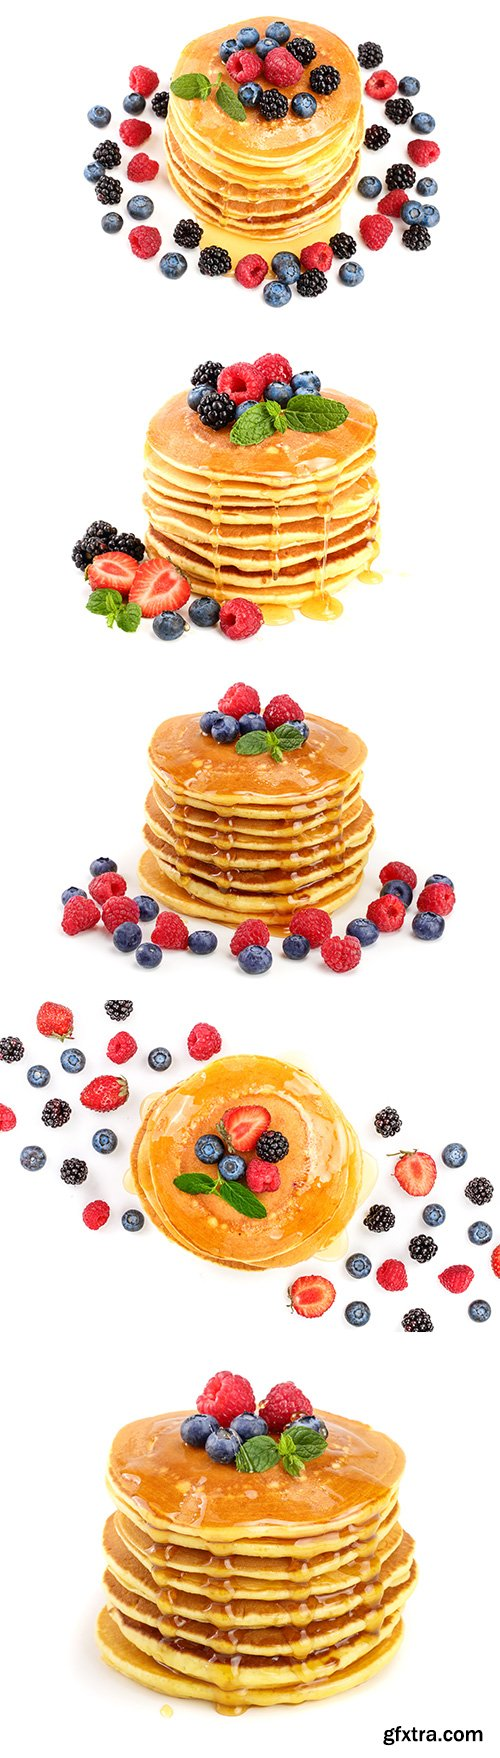 Pancakes Stack With Different Berries Isolated - 6xJPGs